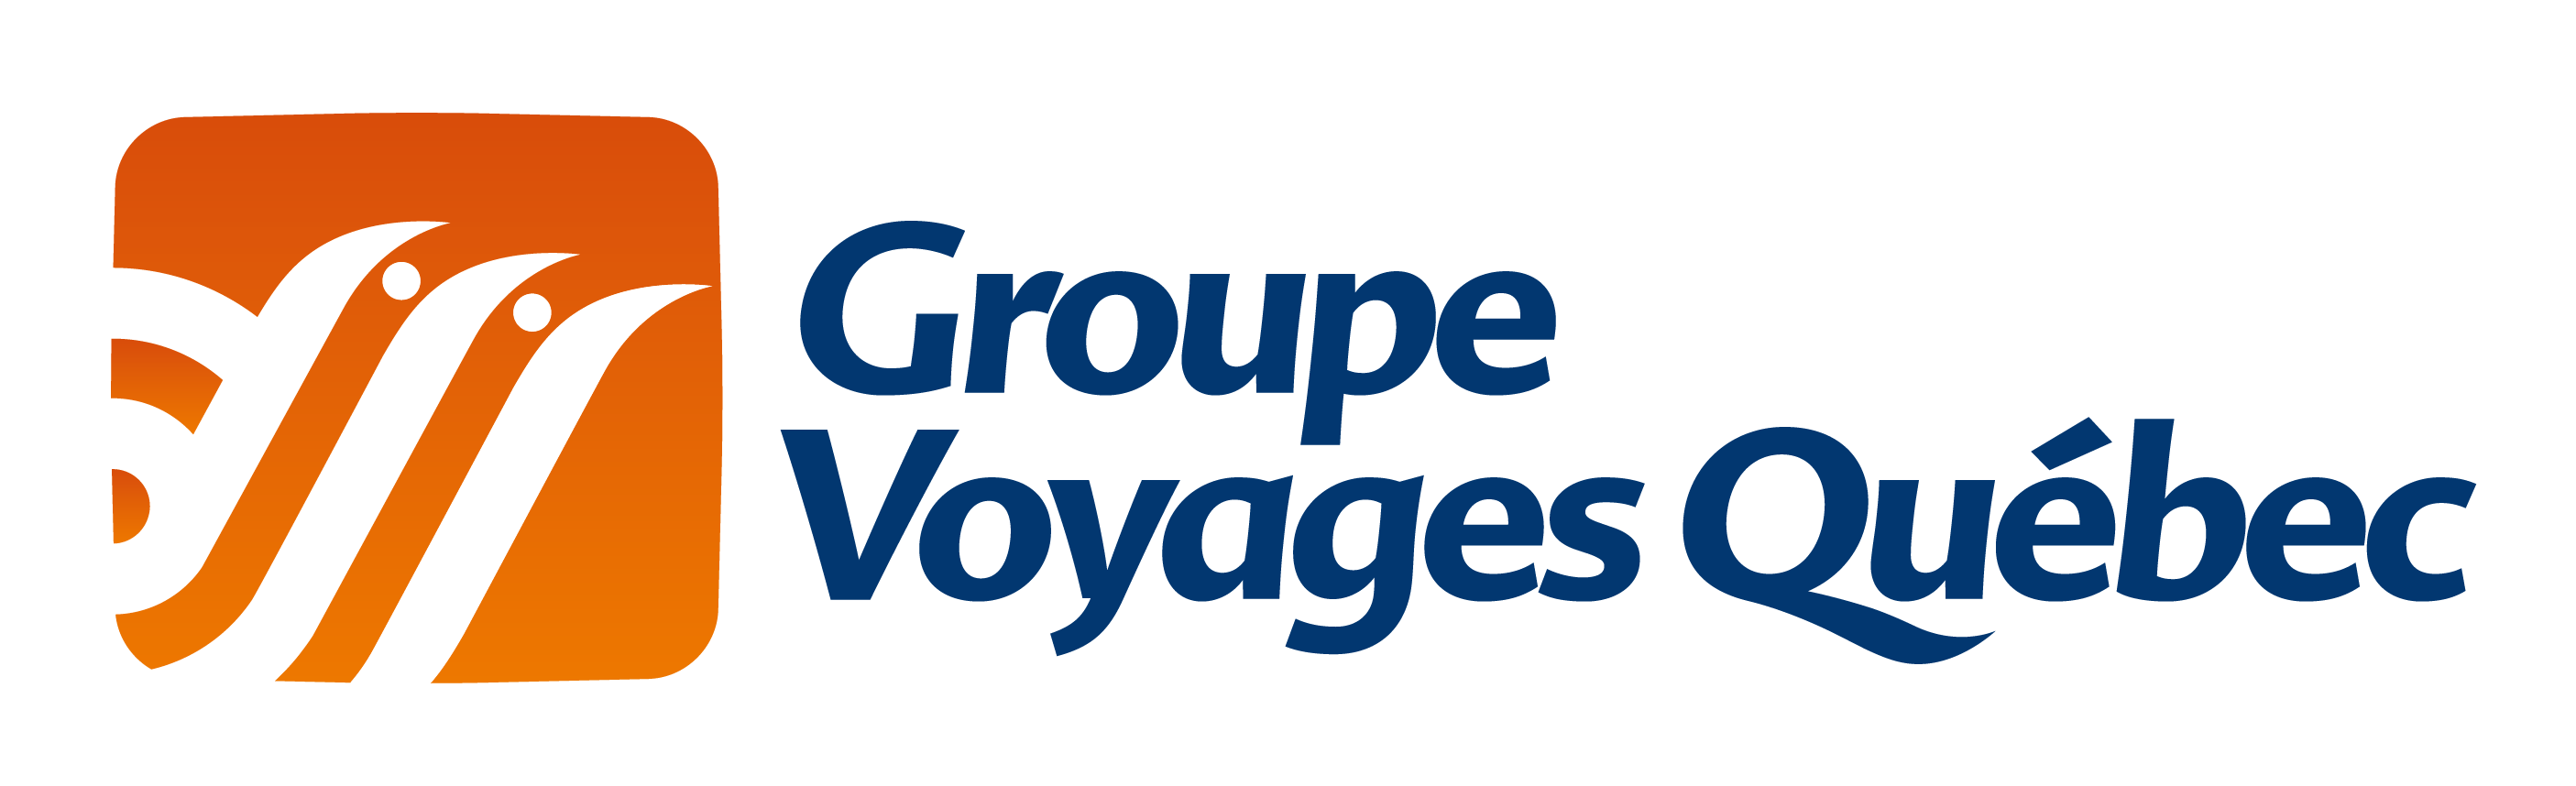 Groupe Voyages Quebec